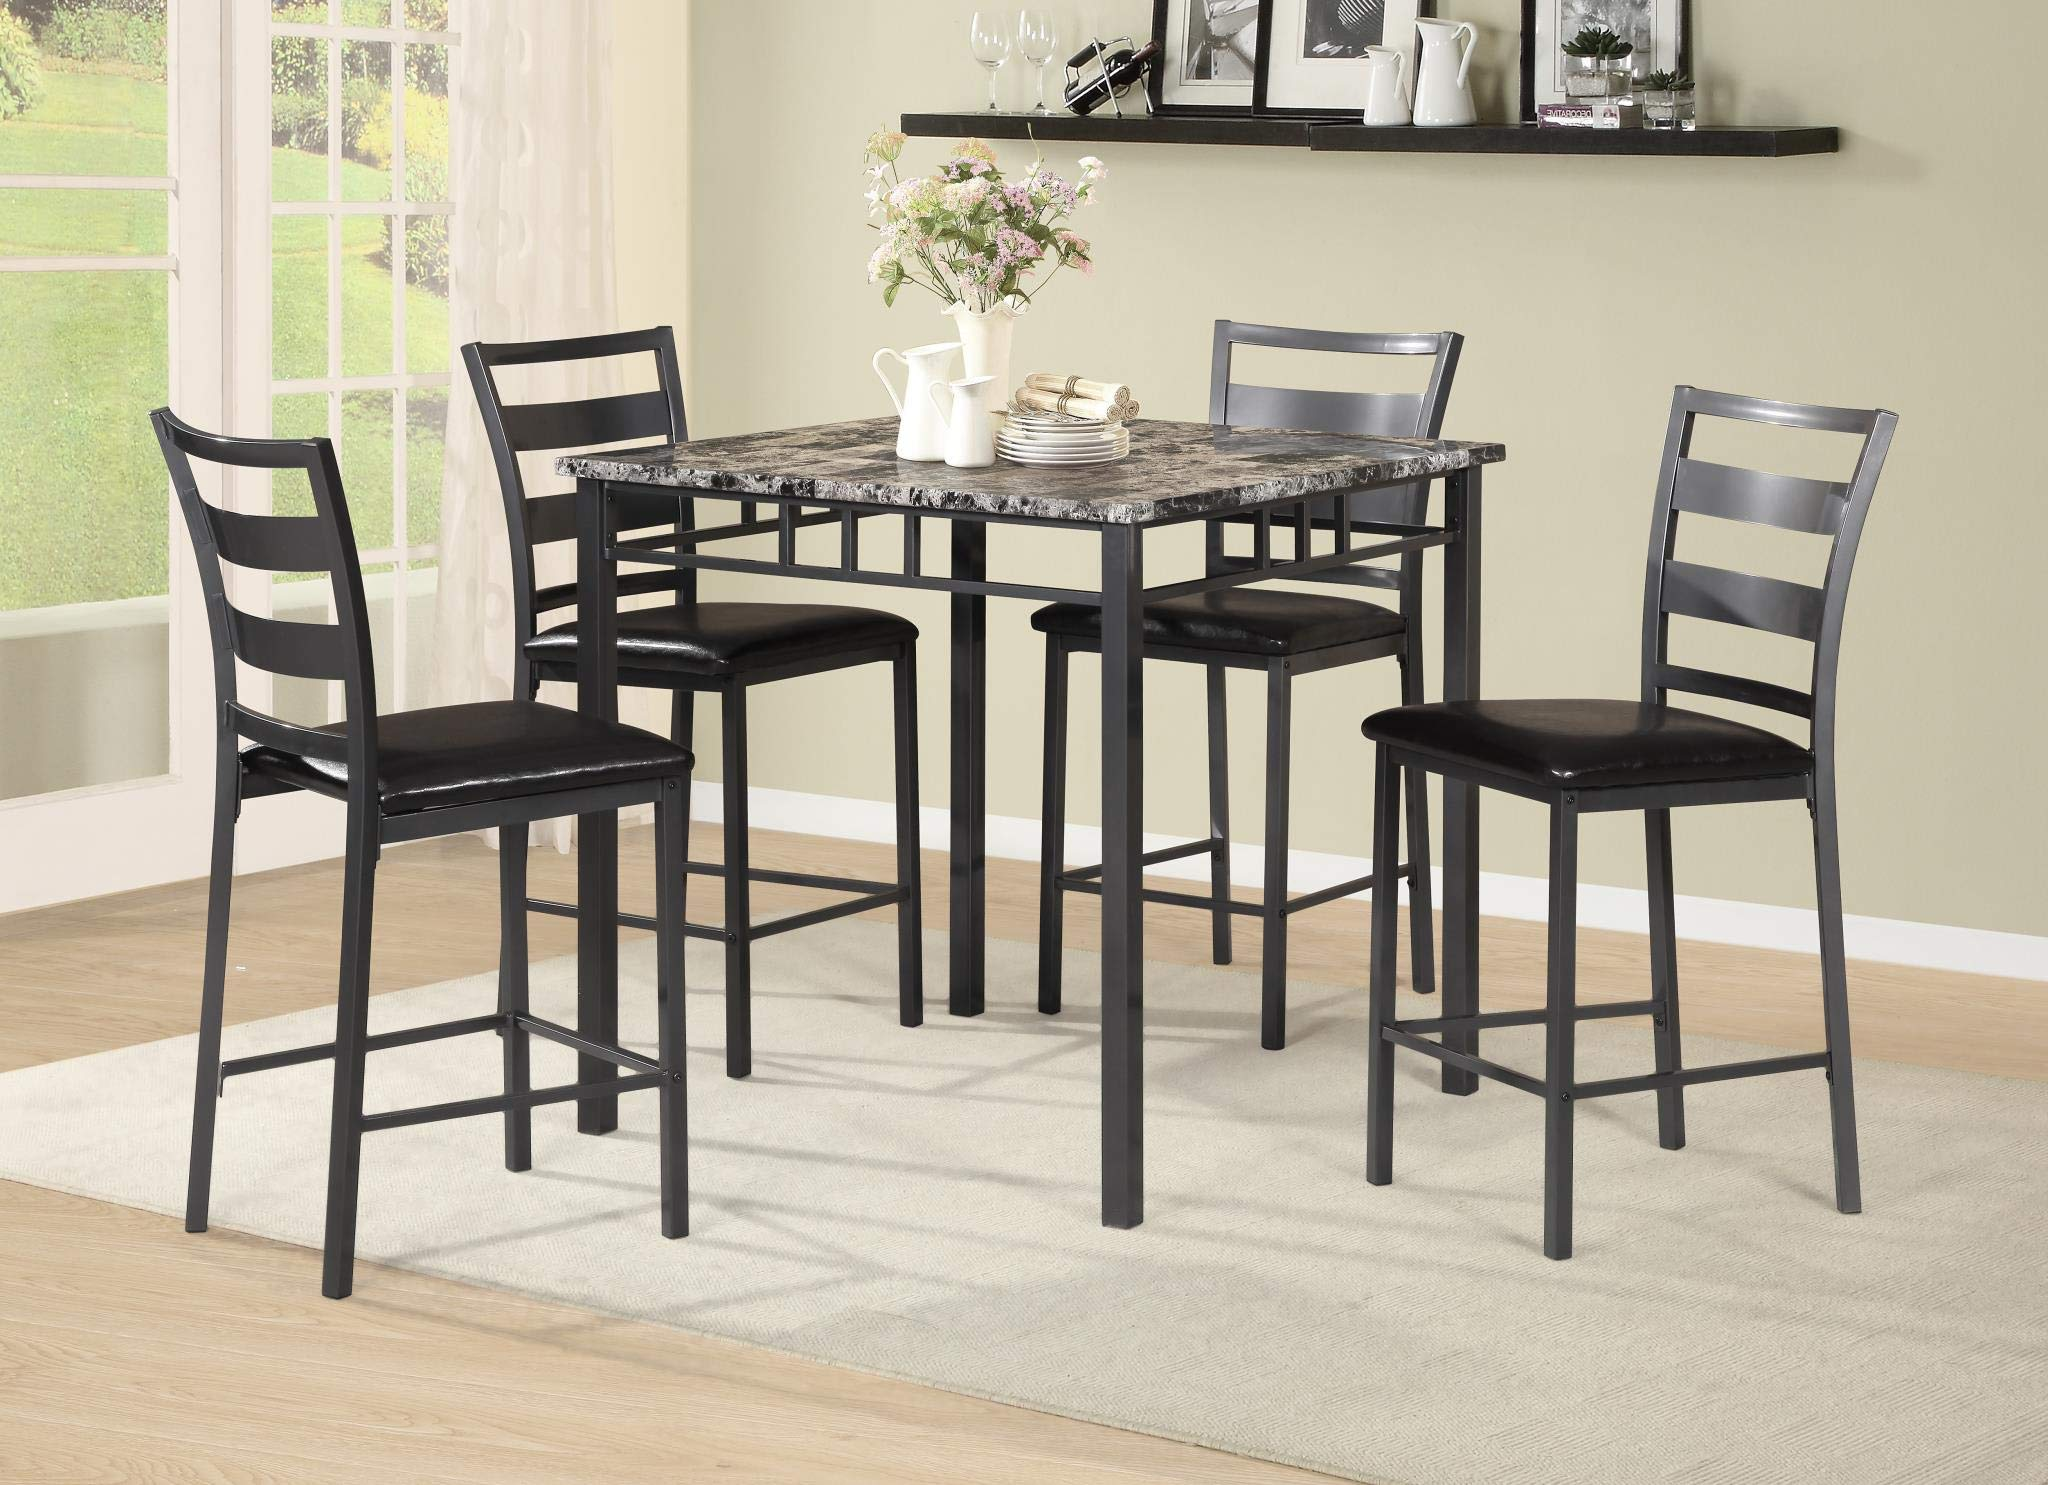 GTU Furniture New Transitional 5-Piece Upholstered Faux Marble Pub Dining Set